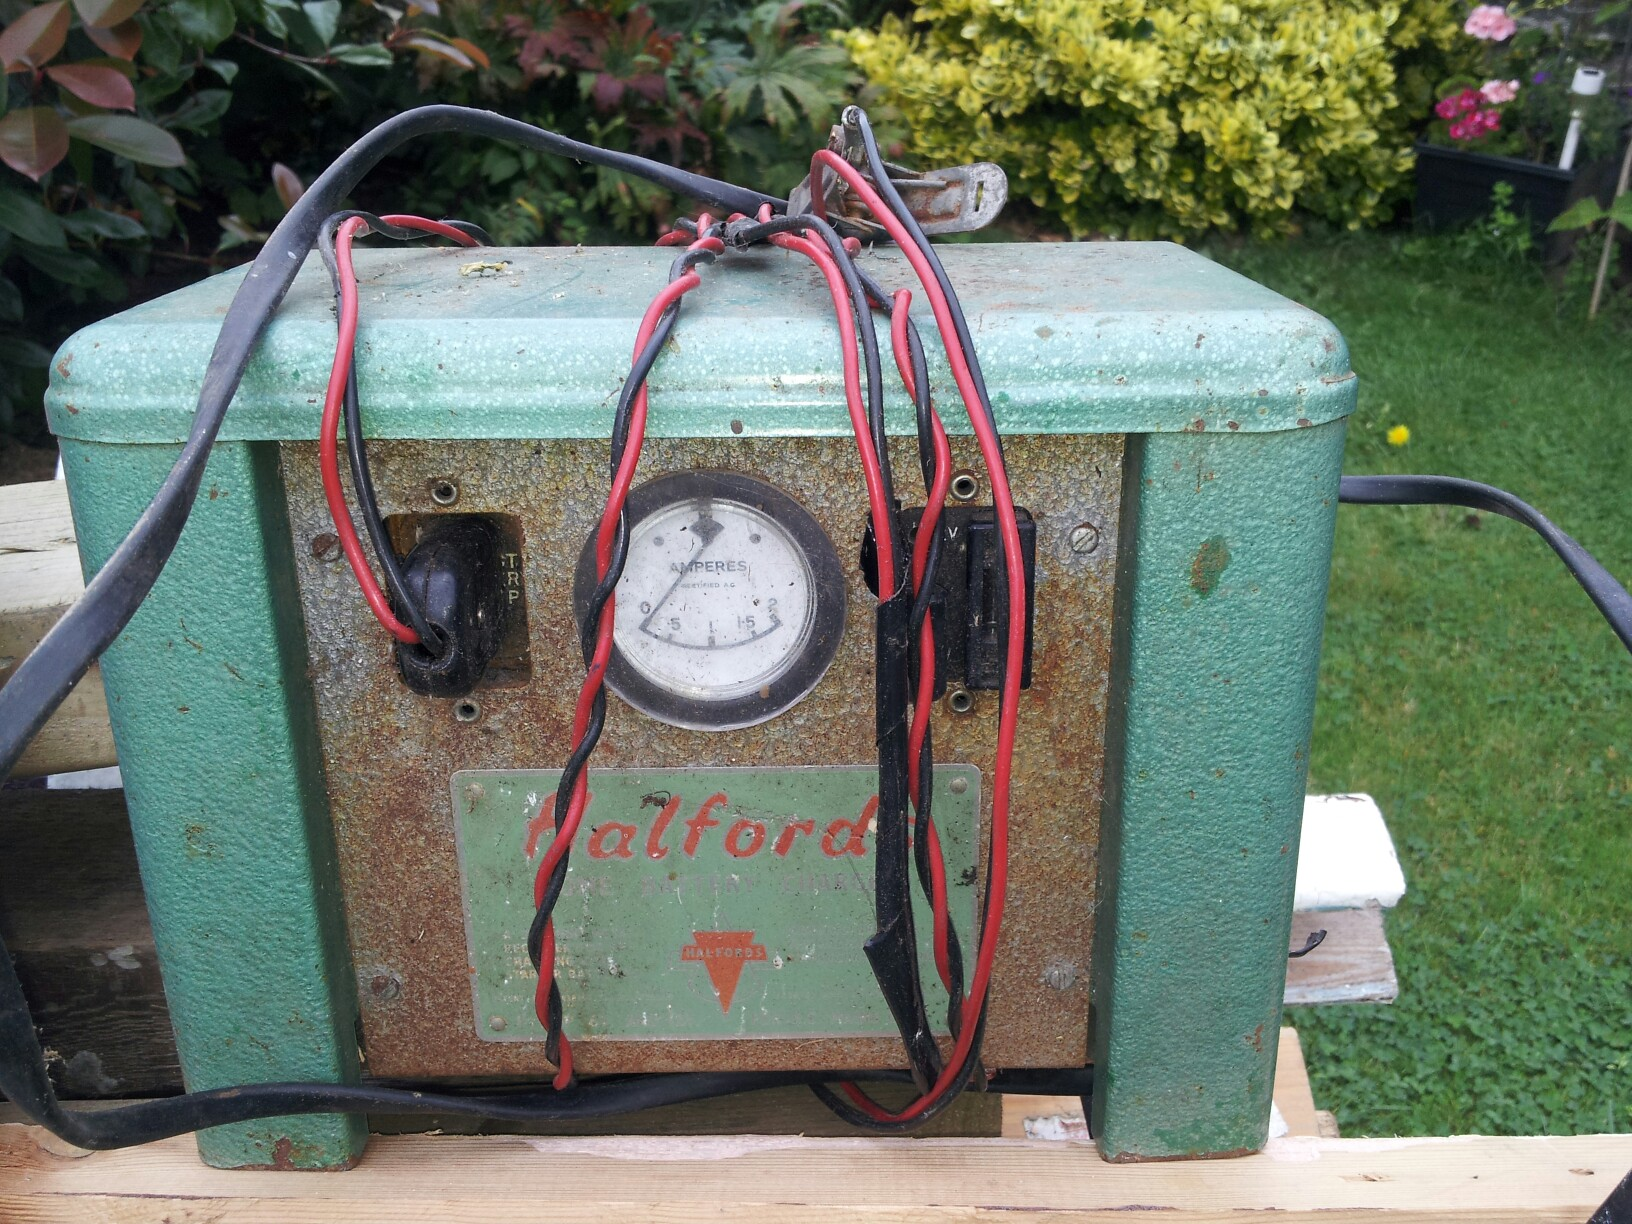 6v Battery Charger Local Classifieds Buy And Sell In